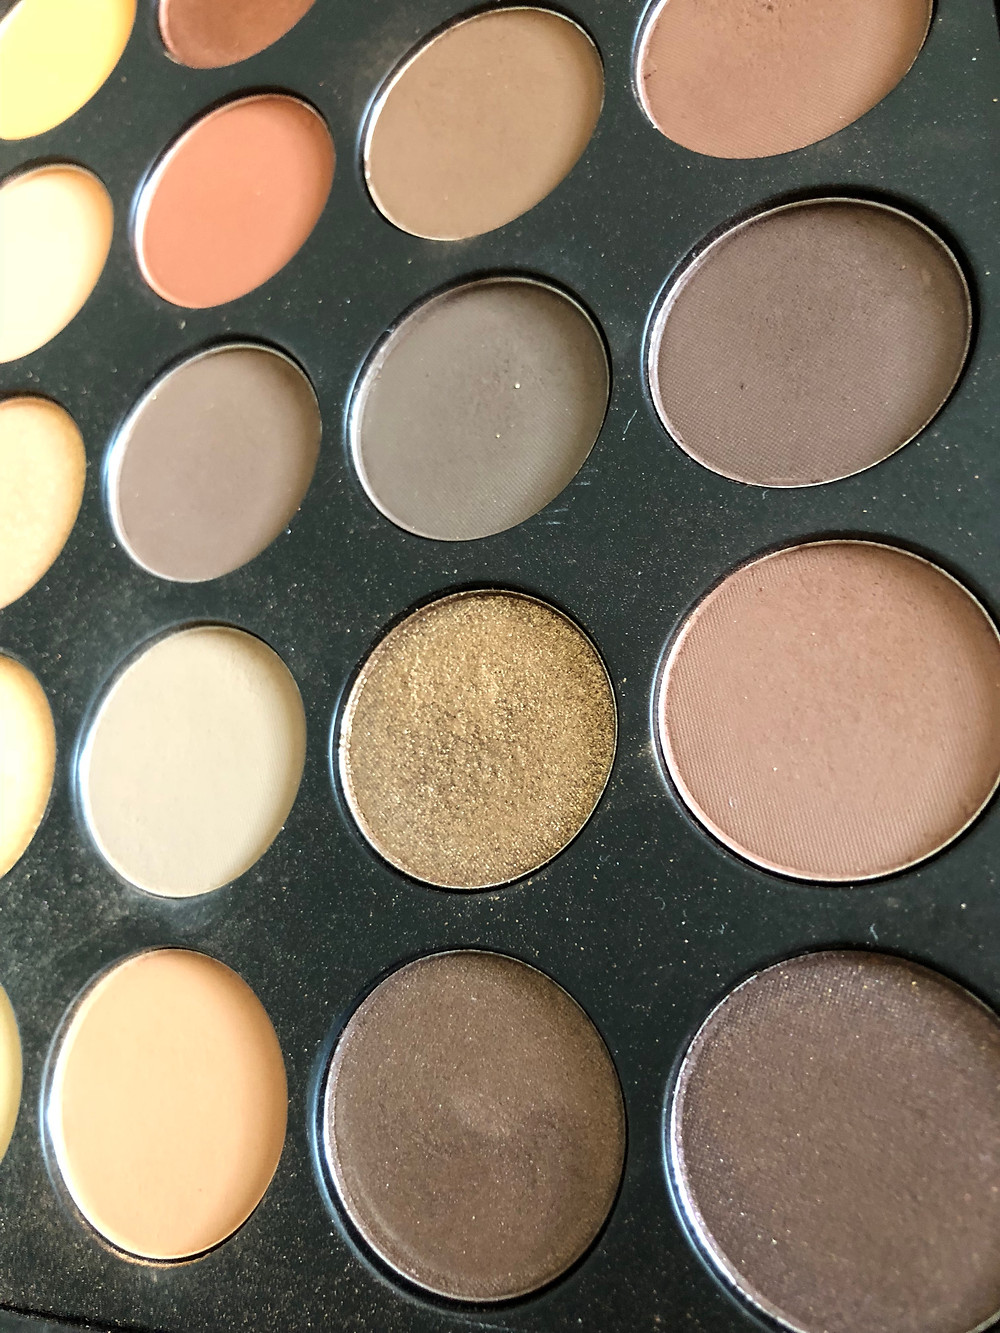 morphe 35O, eyeshadows